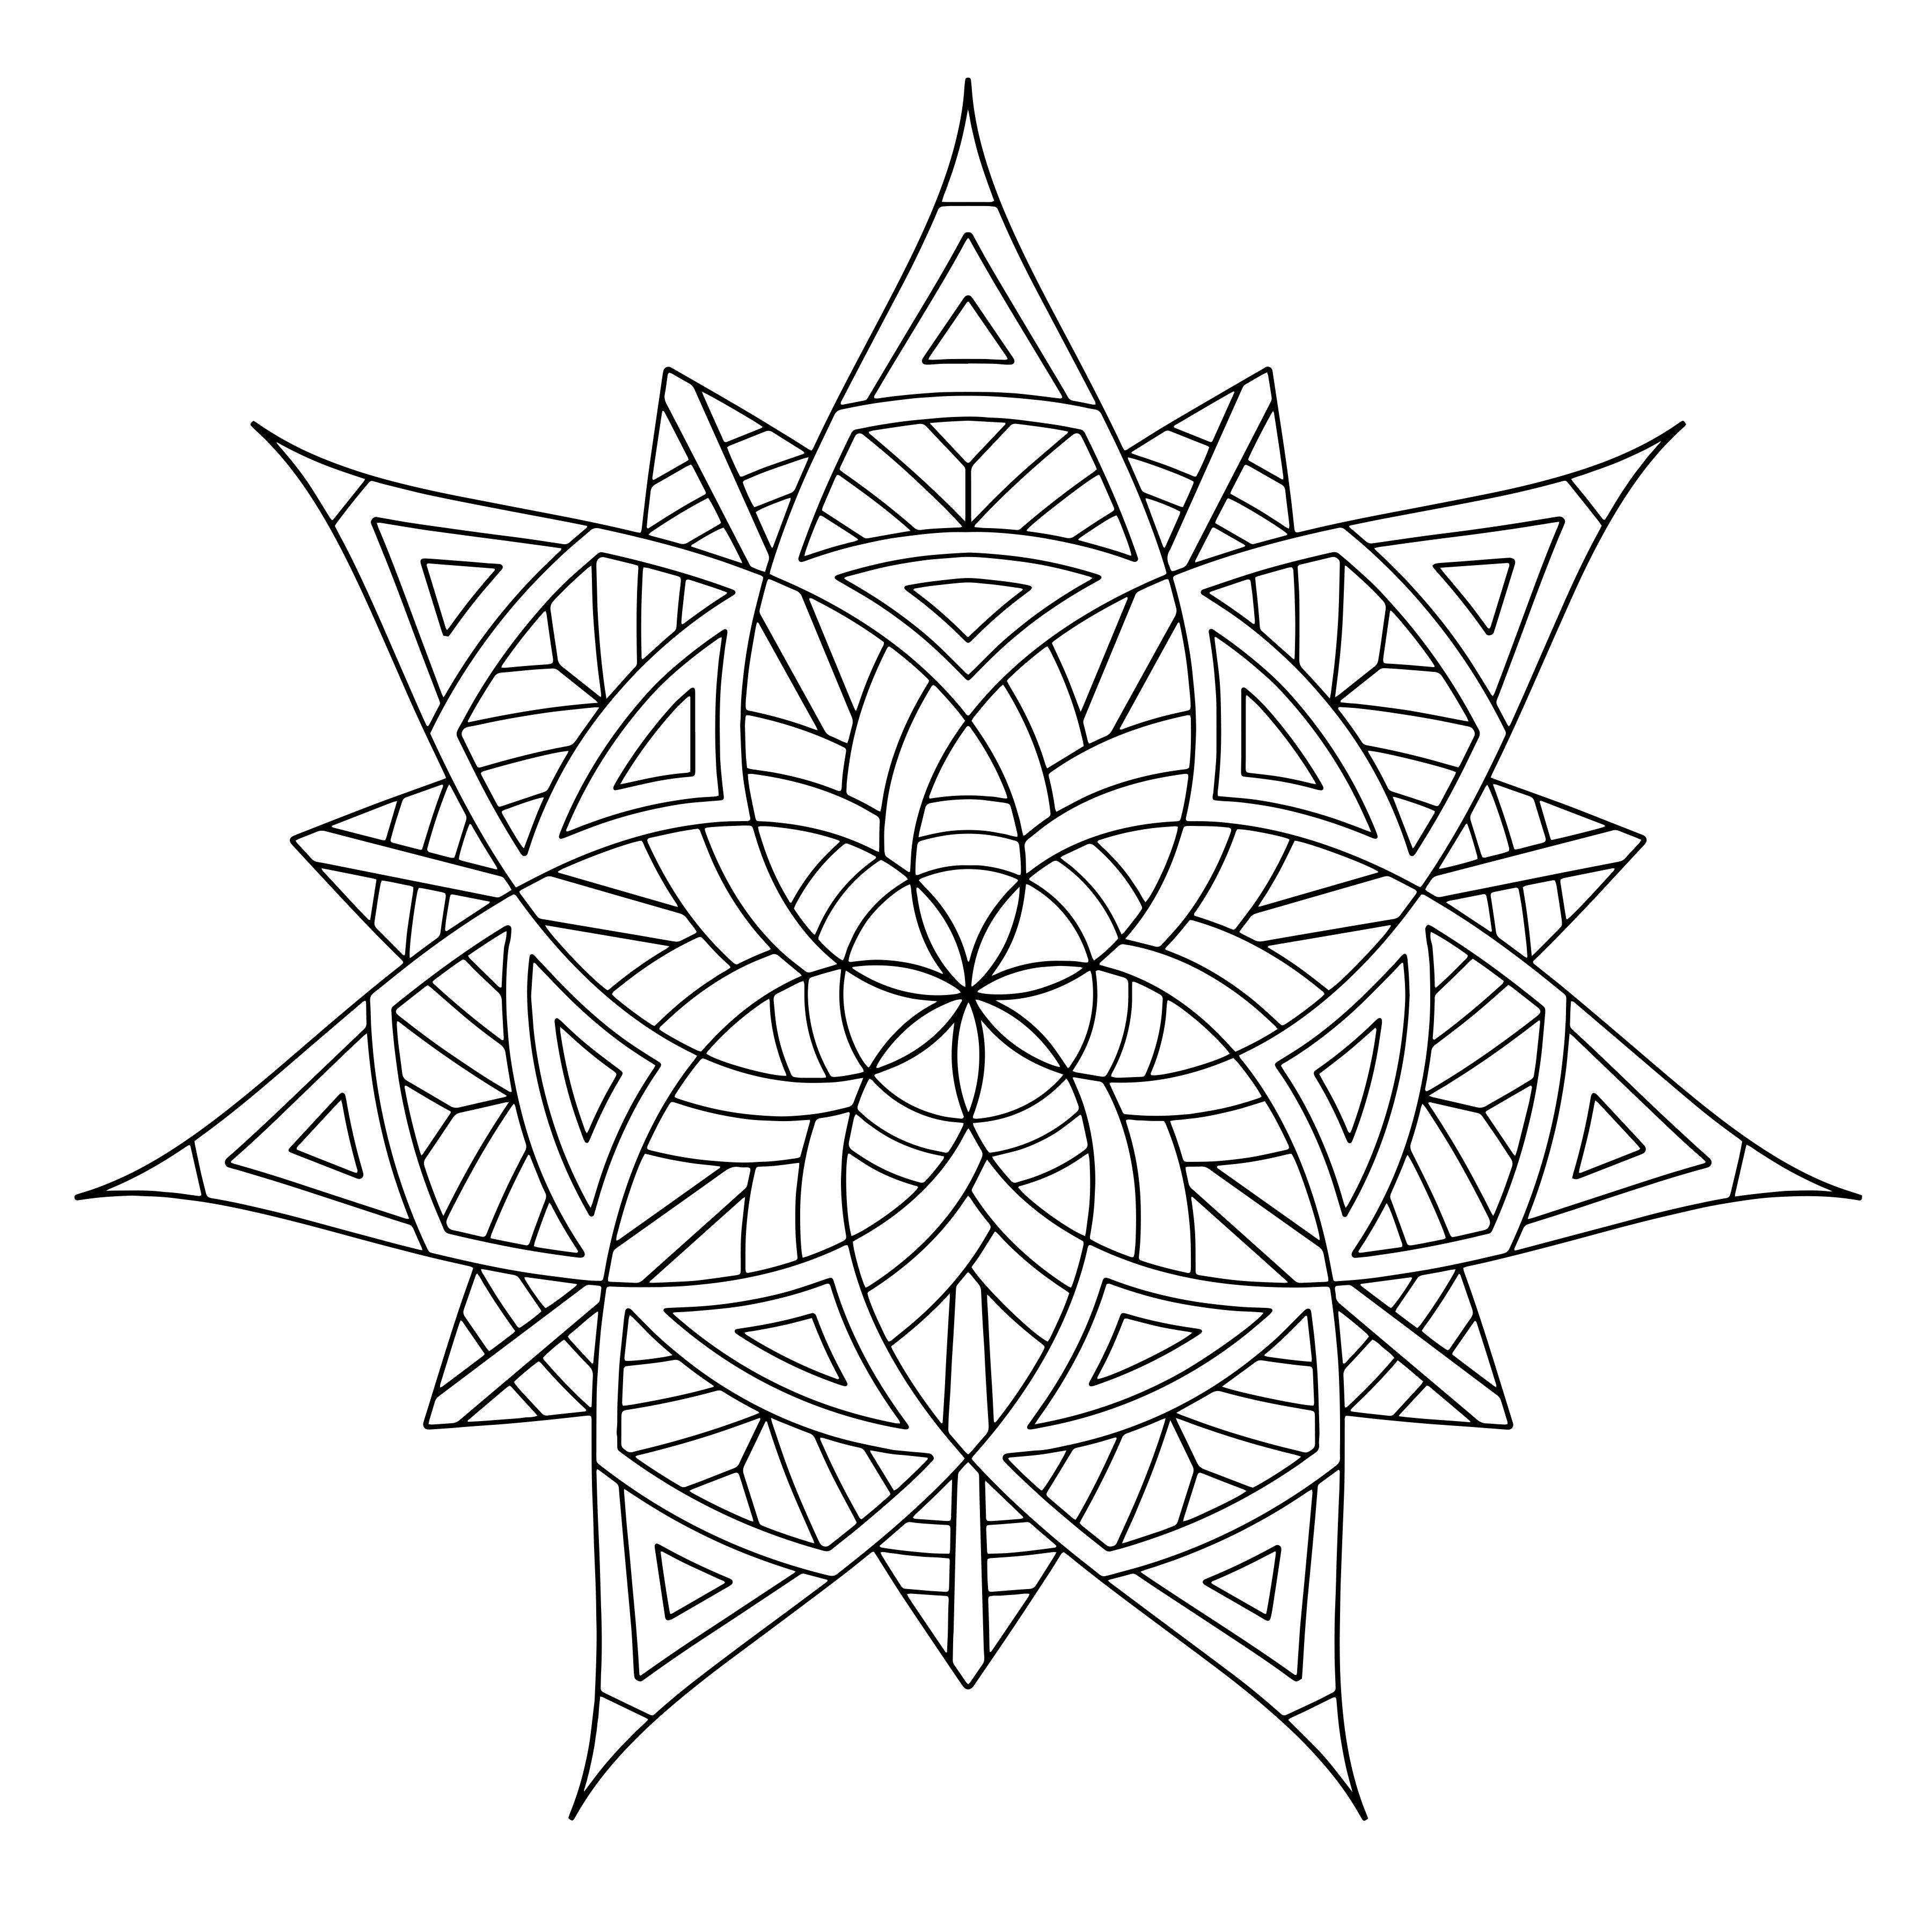 3600x3600 Coloring Pages Geometric Shapes Christschurchfwb Find Here